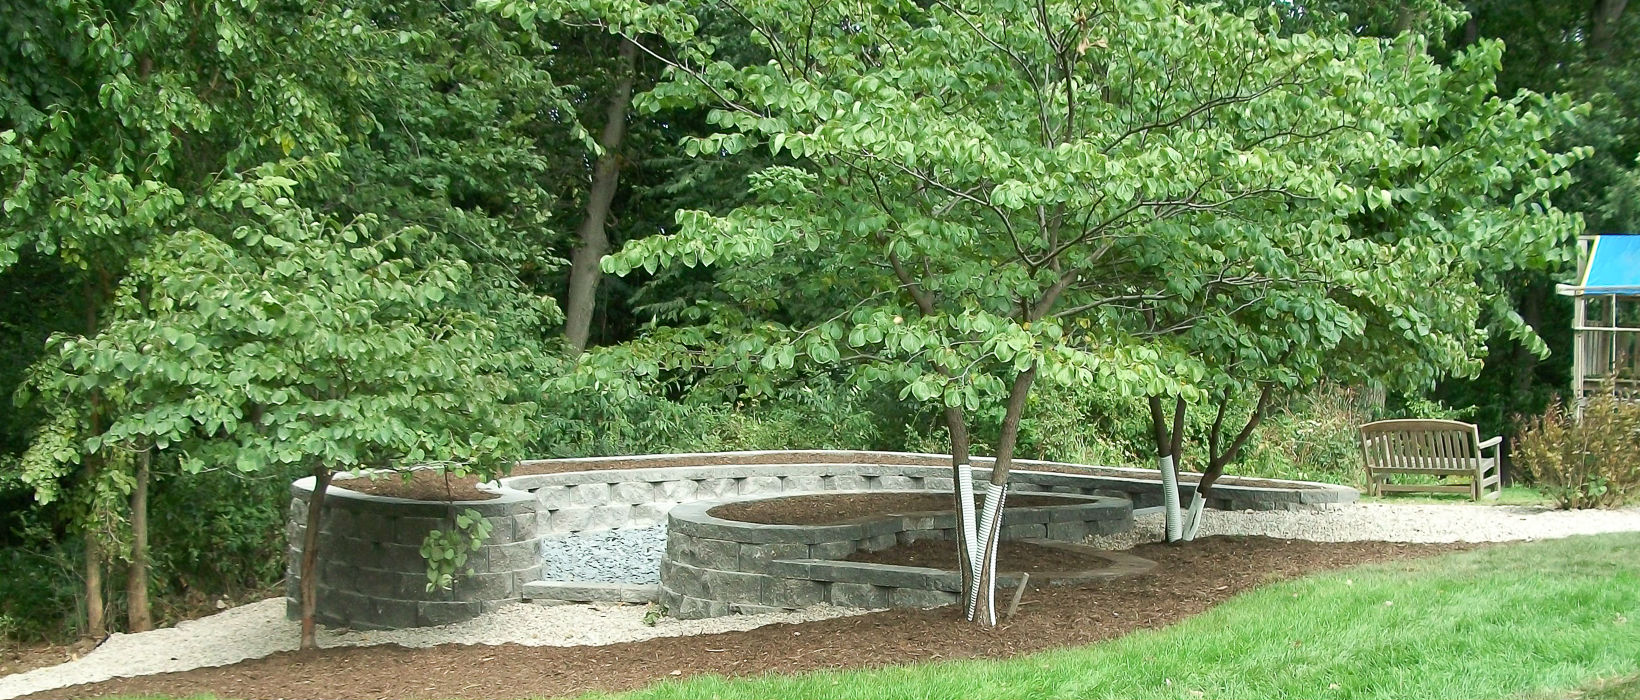 Retaining Walls - Landscaping Design   Forever Green ... on Green Wall Patio id=18814